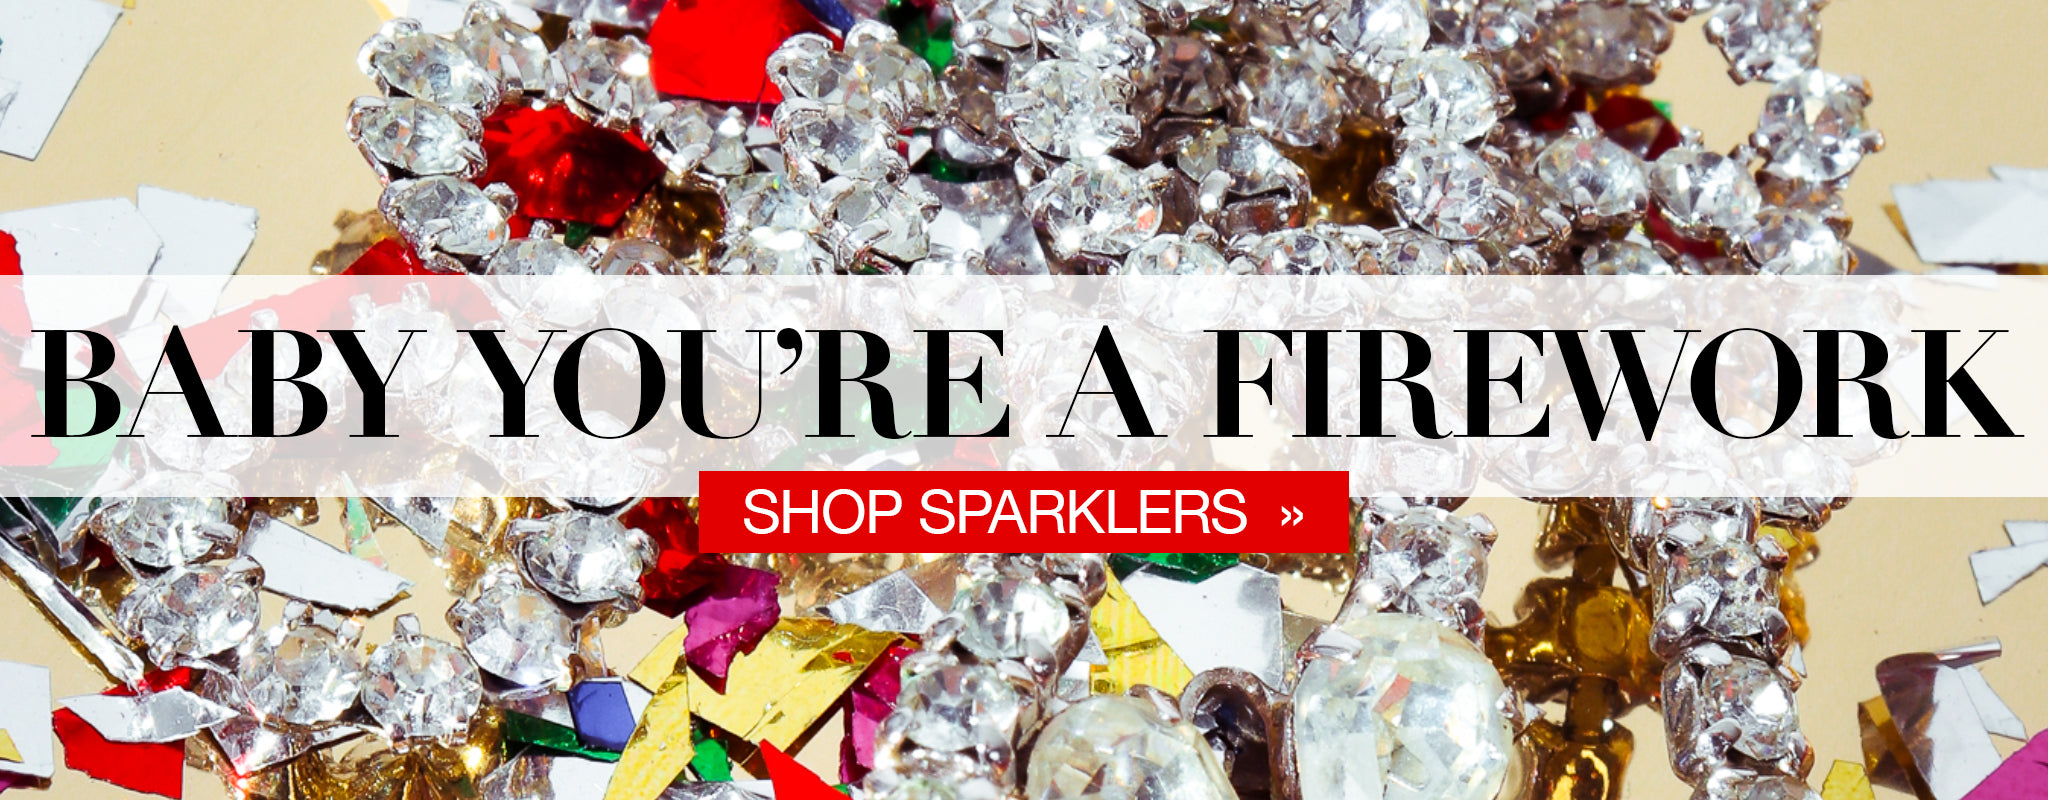 Recess Dresscode New Ear's Sparklers Baby Youre A Firework- Shop Sparklers Collection